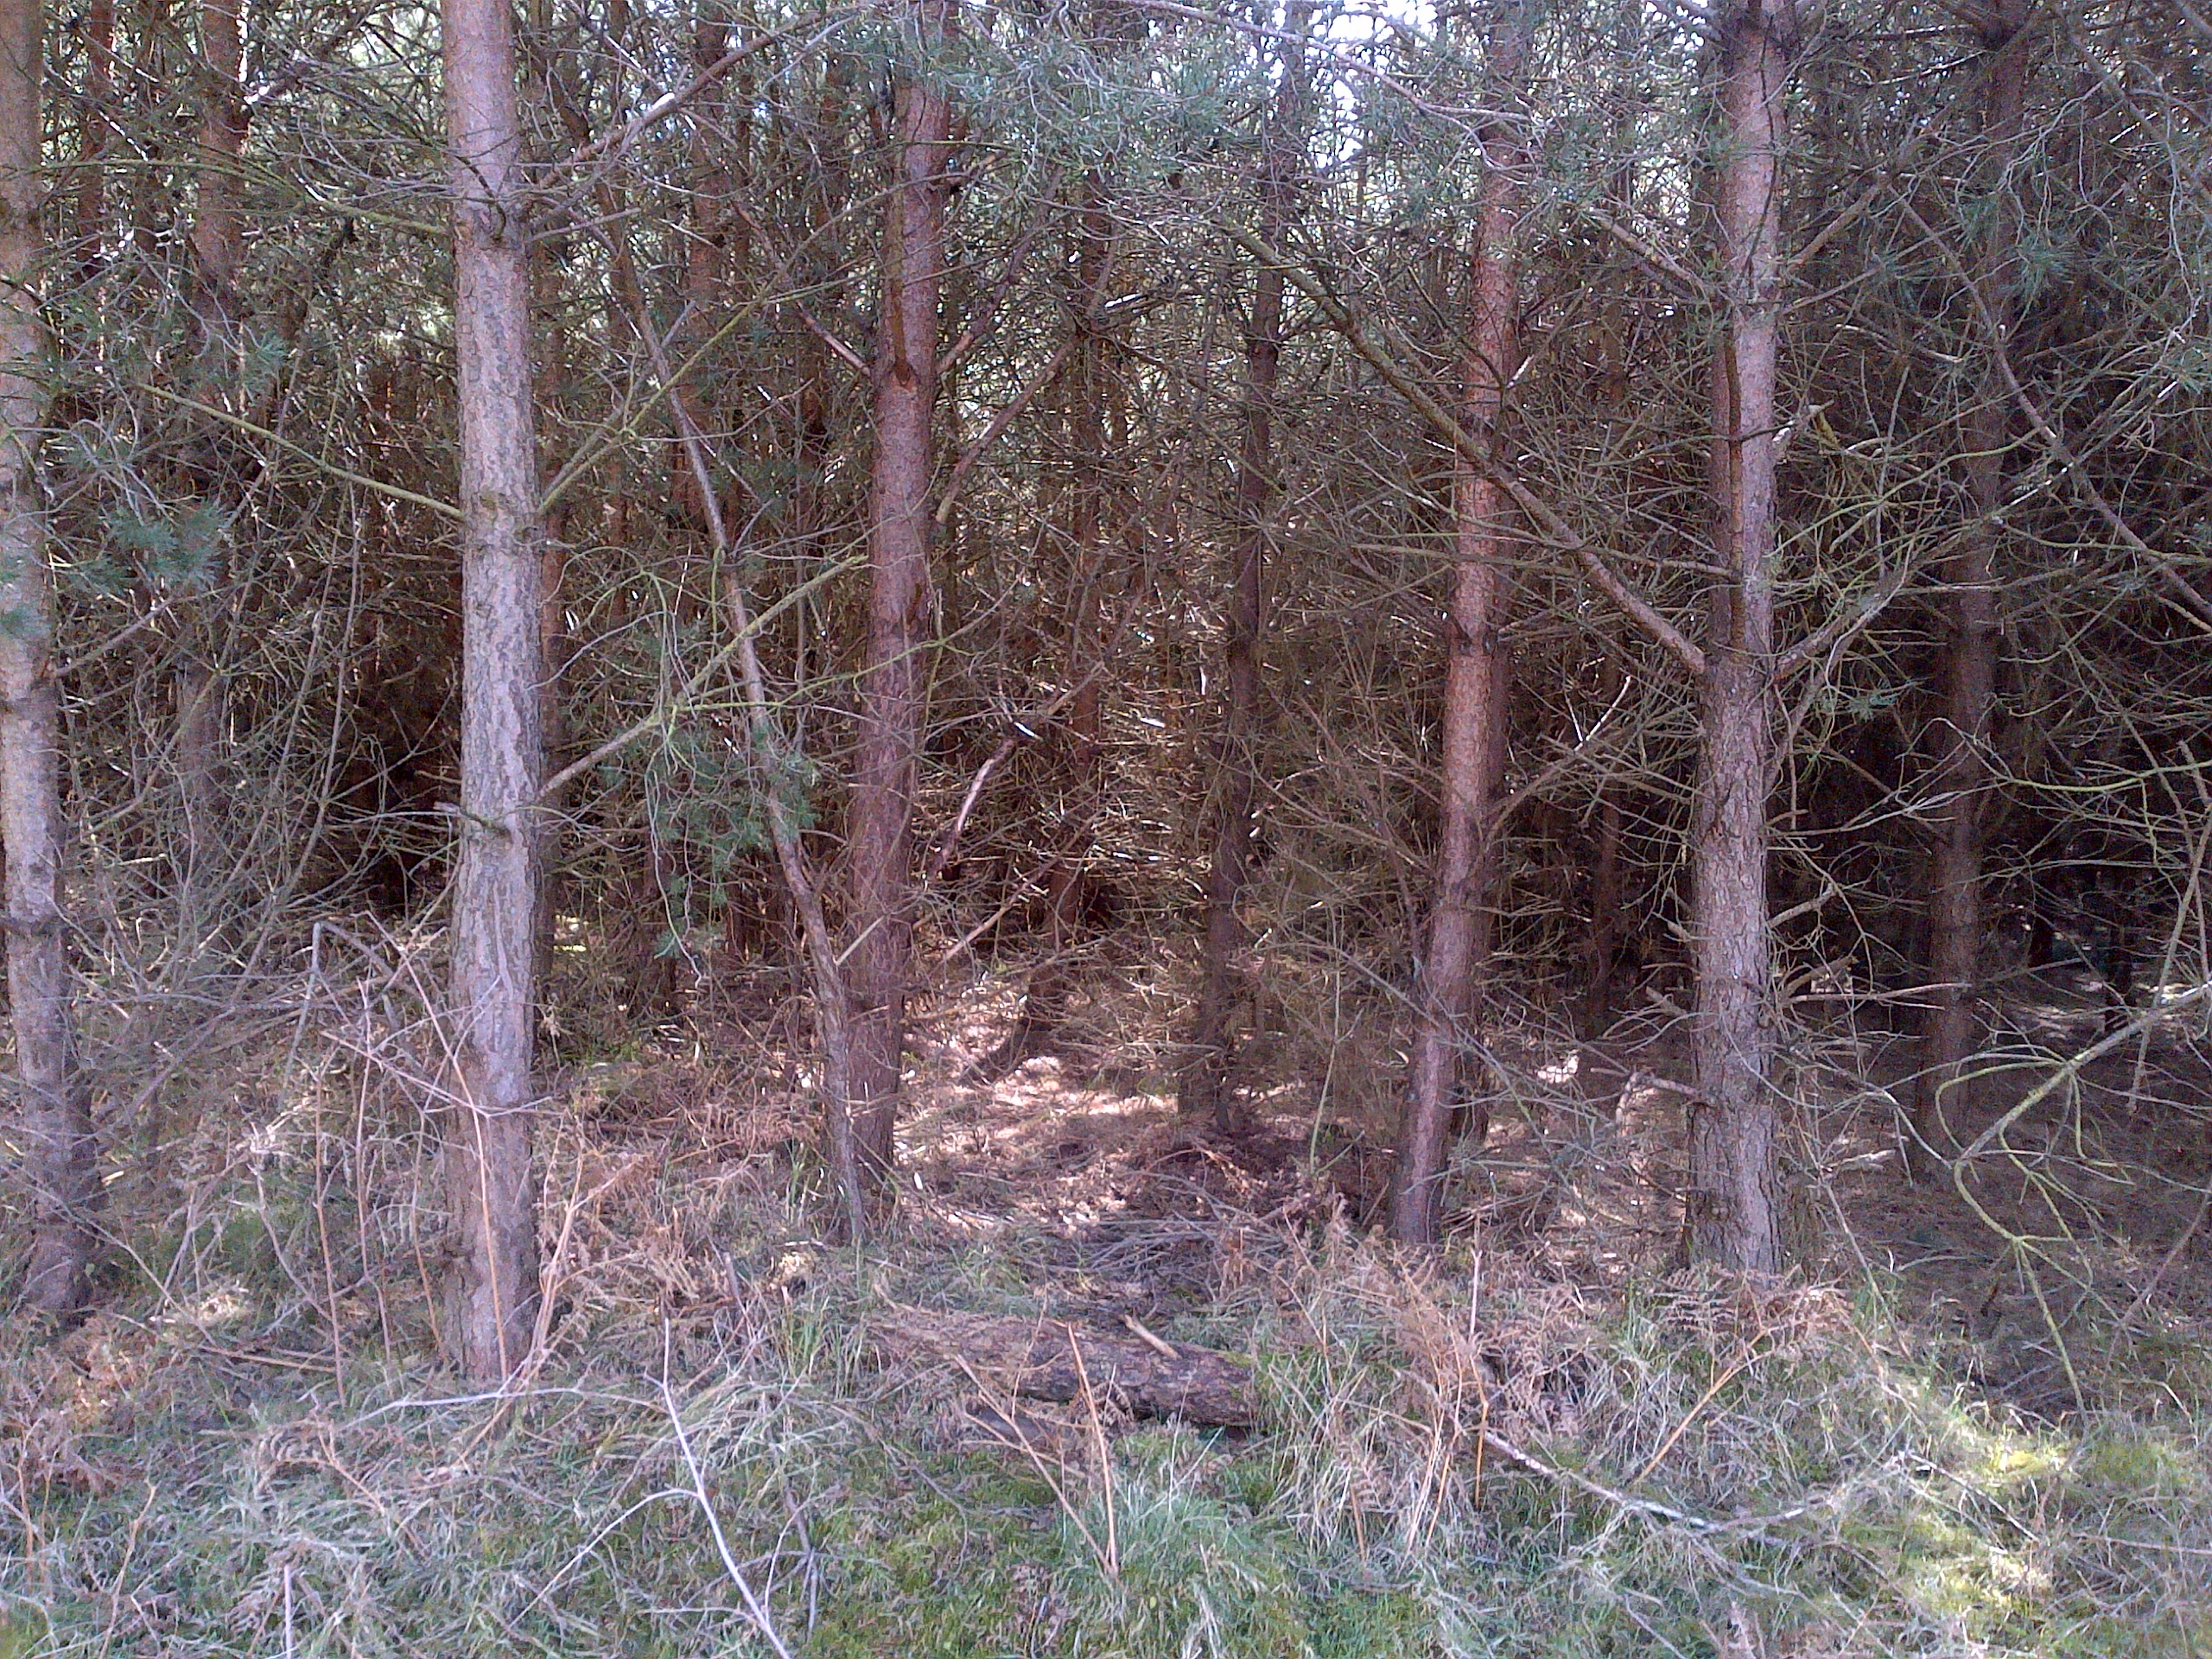 Downham Warren - Section 14